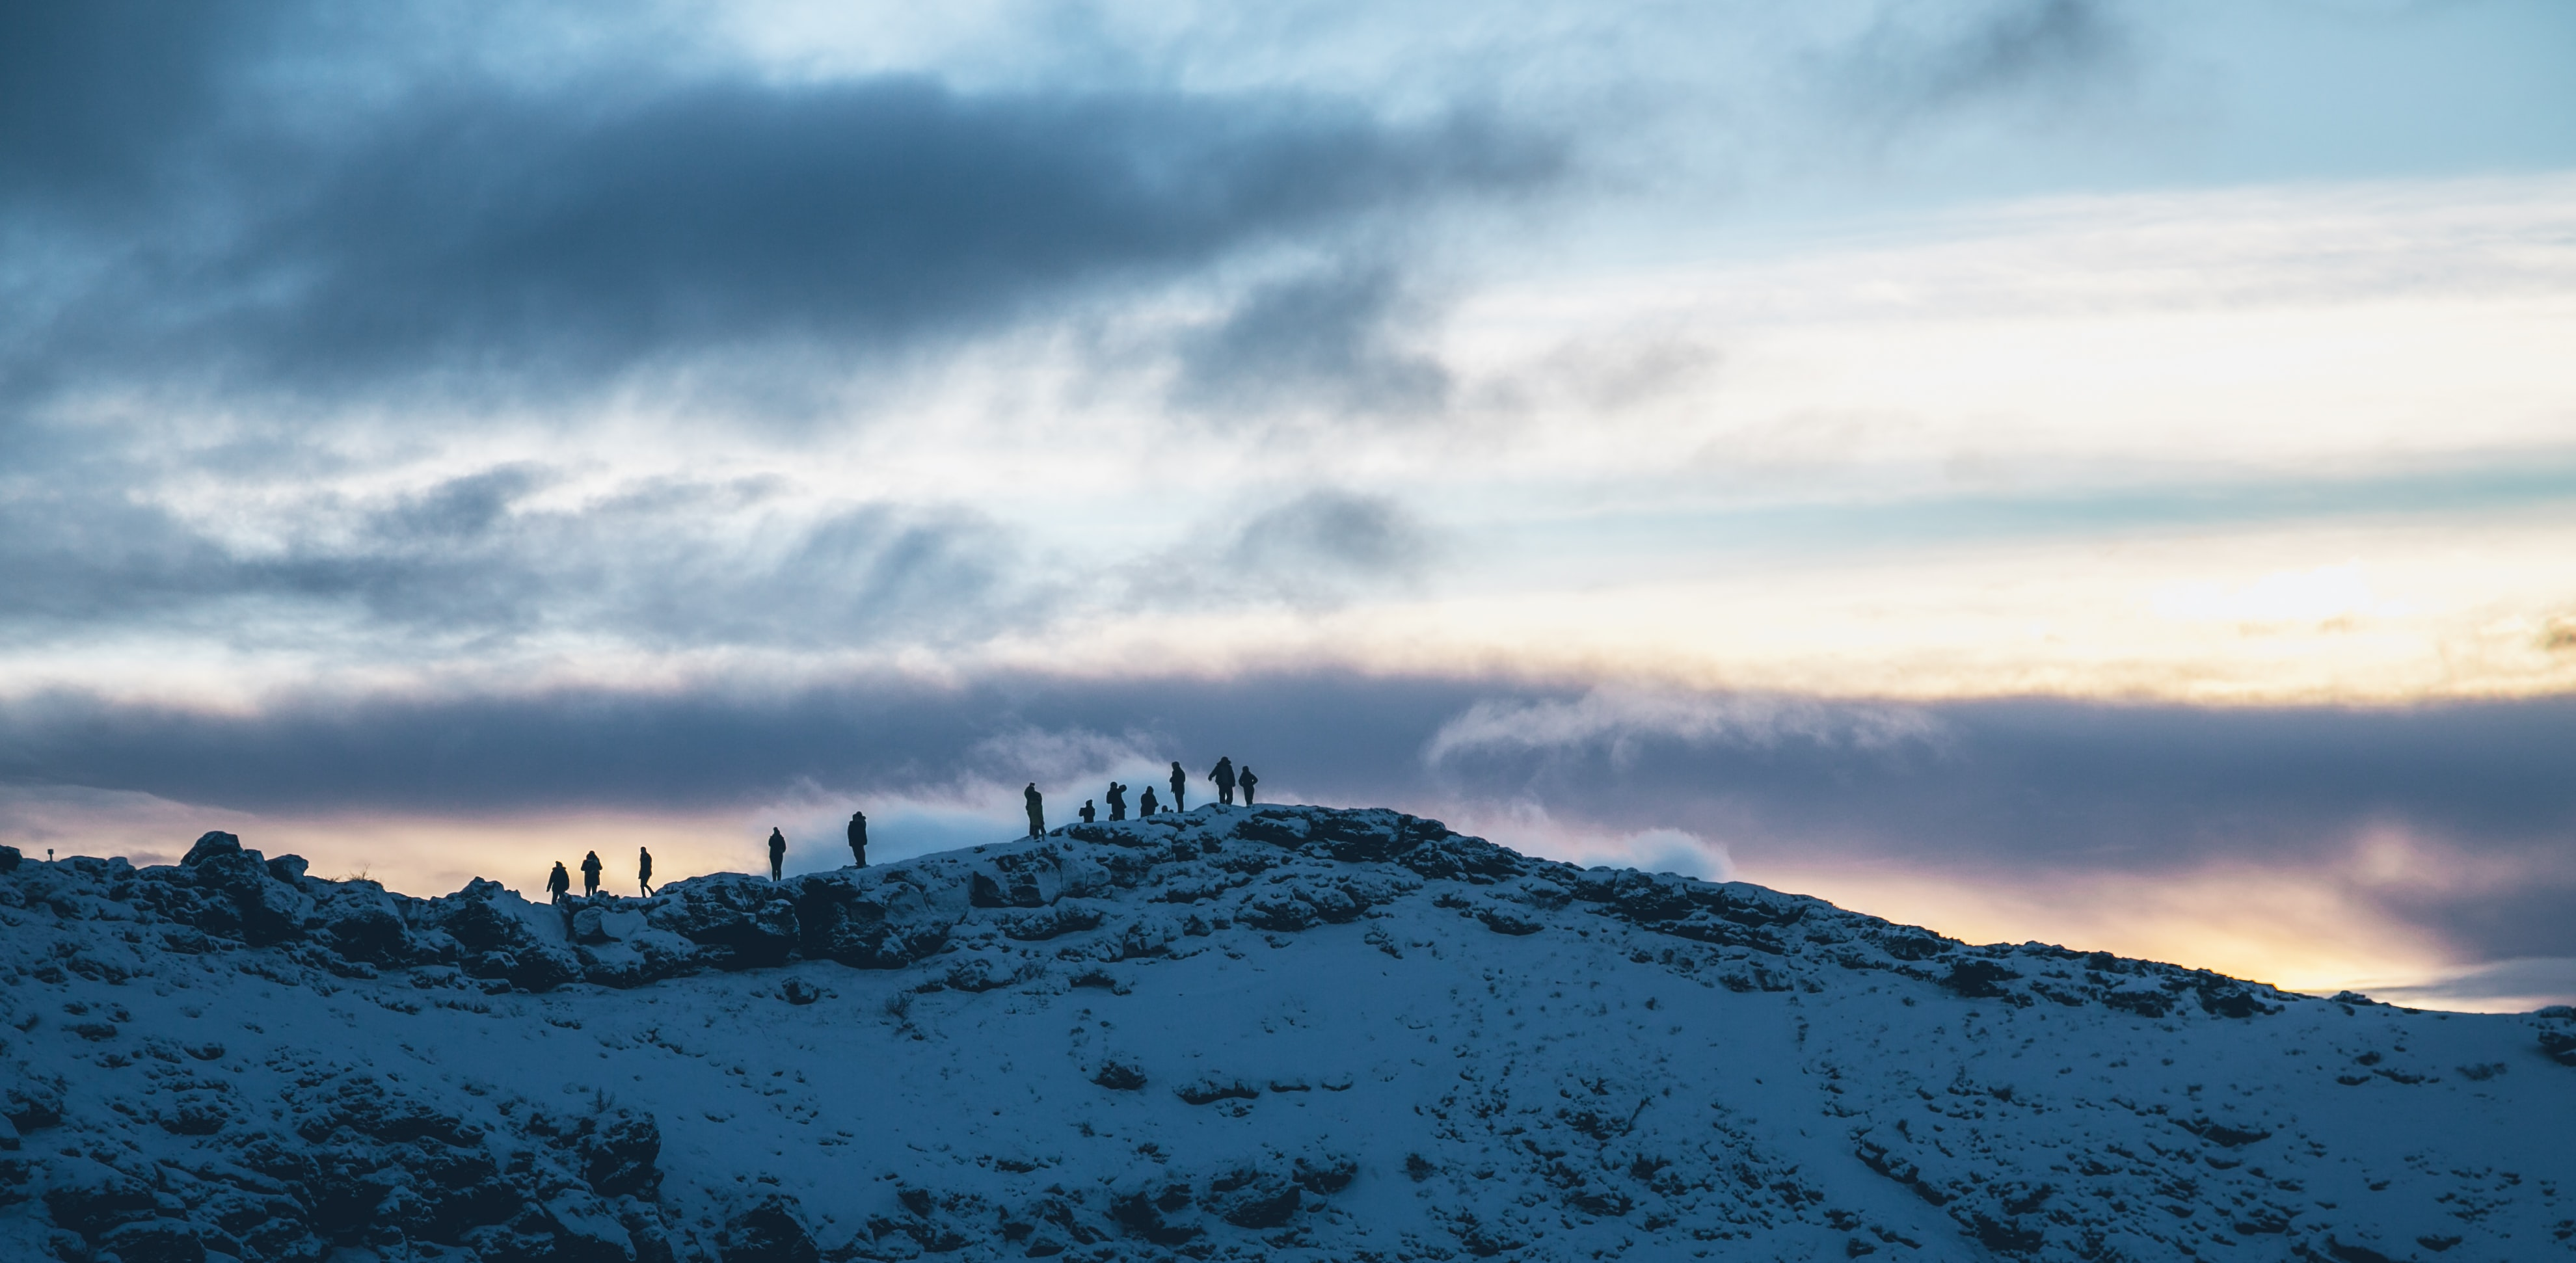 silhouette of people on mountain